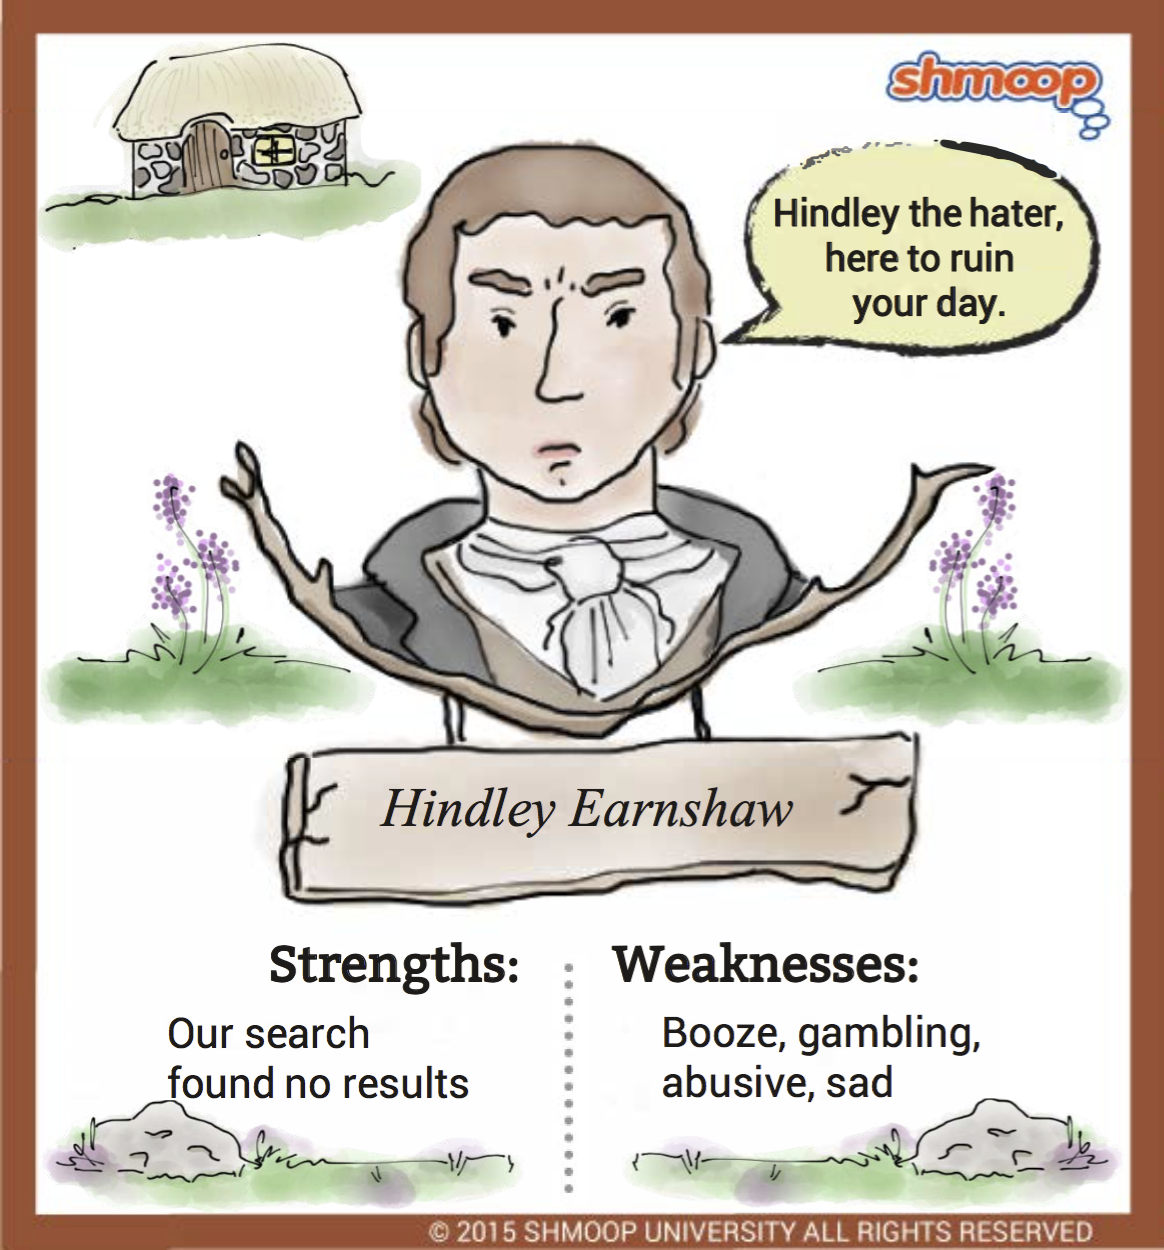 edgar linton wuthering heights what is your damage heathcliff  hindley earnshaw in wuthering heights character analysis